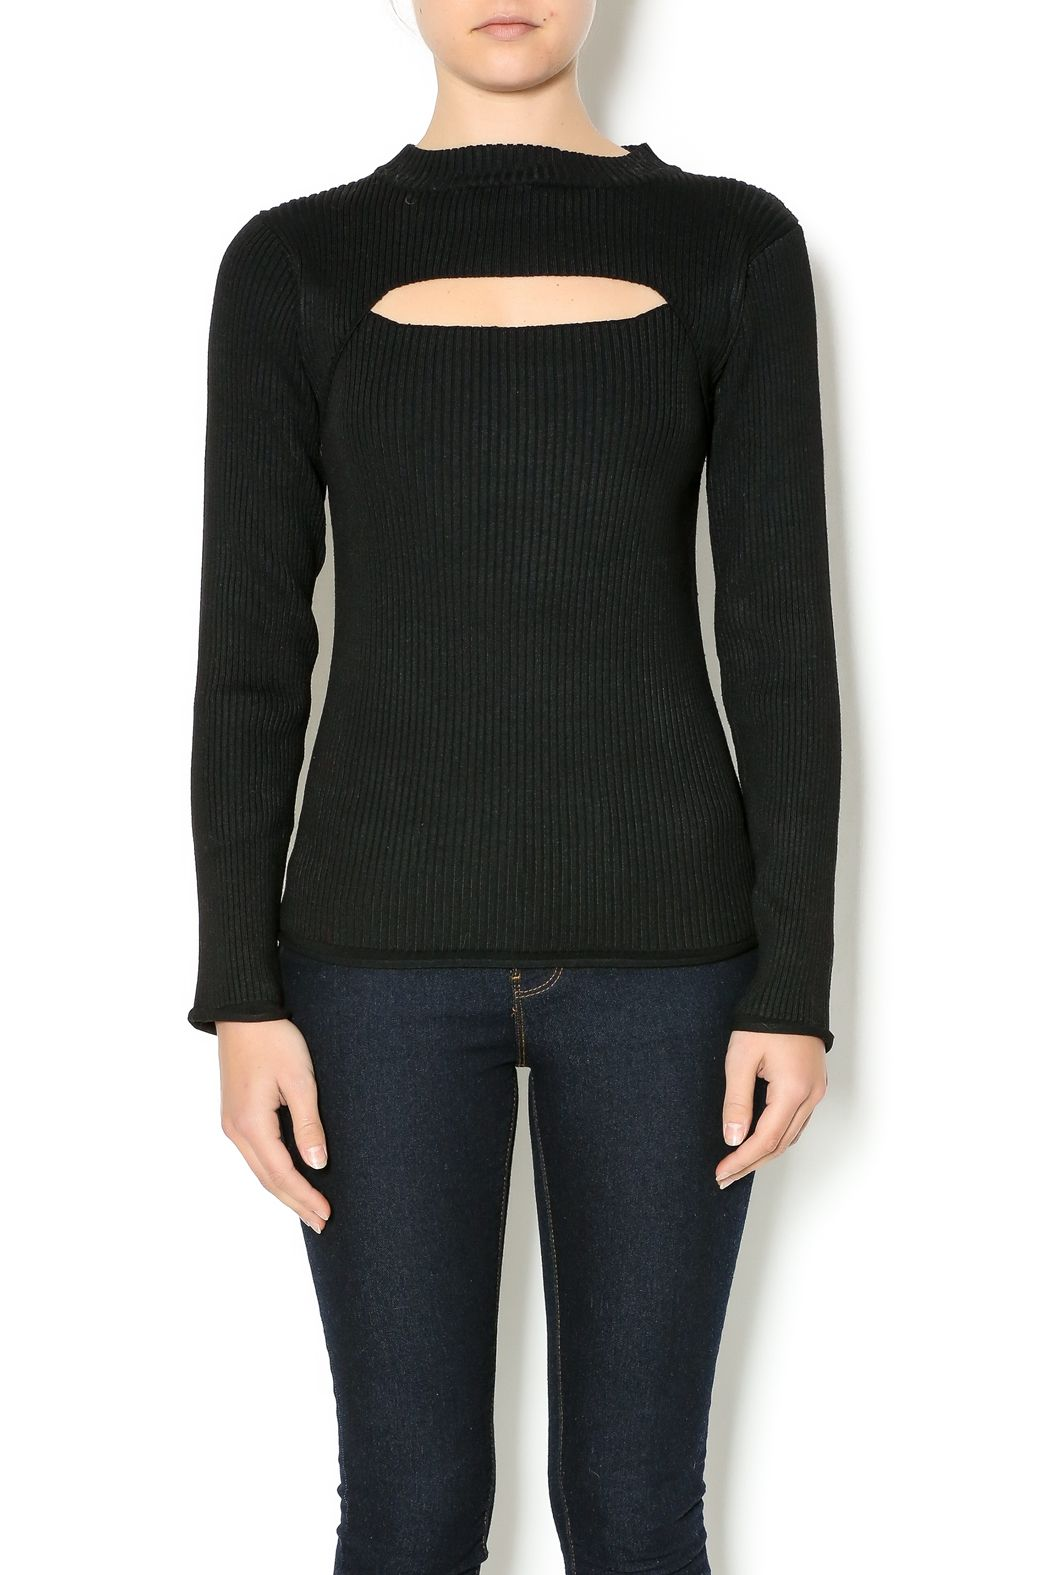 b3c24df659c74 Ribbed top with a mock neck and horizontal slit at the front. Slit Front  Knit Top by Towne. Clothing - Tops - Long Sleeve Long Island